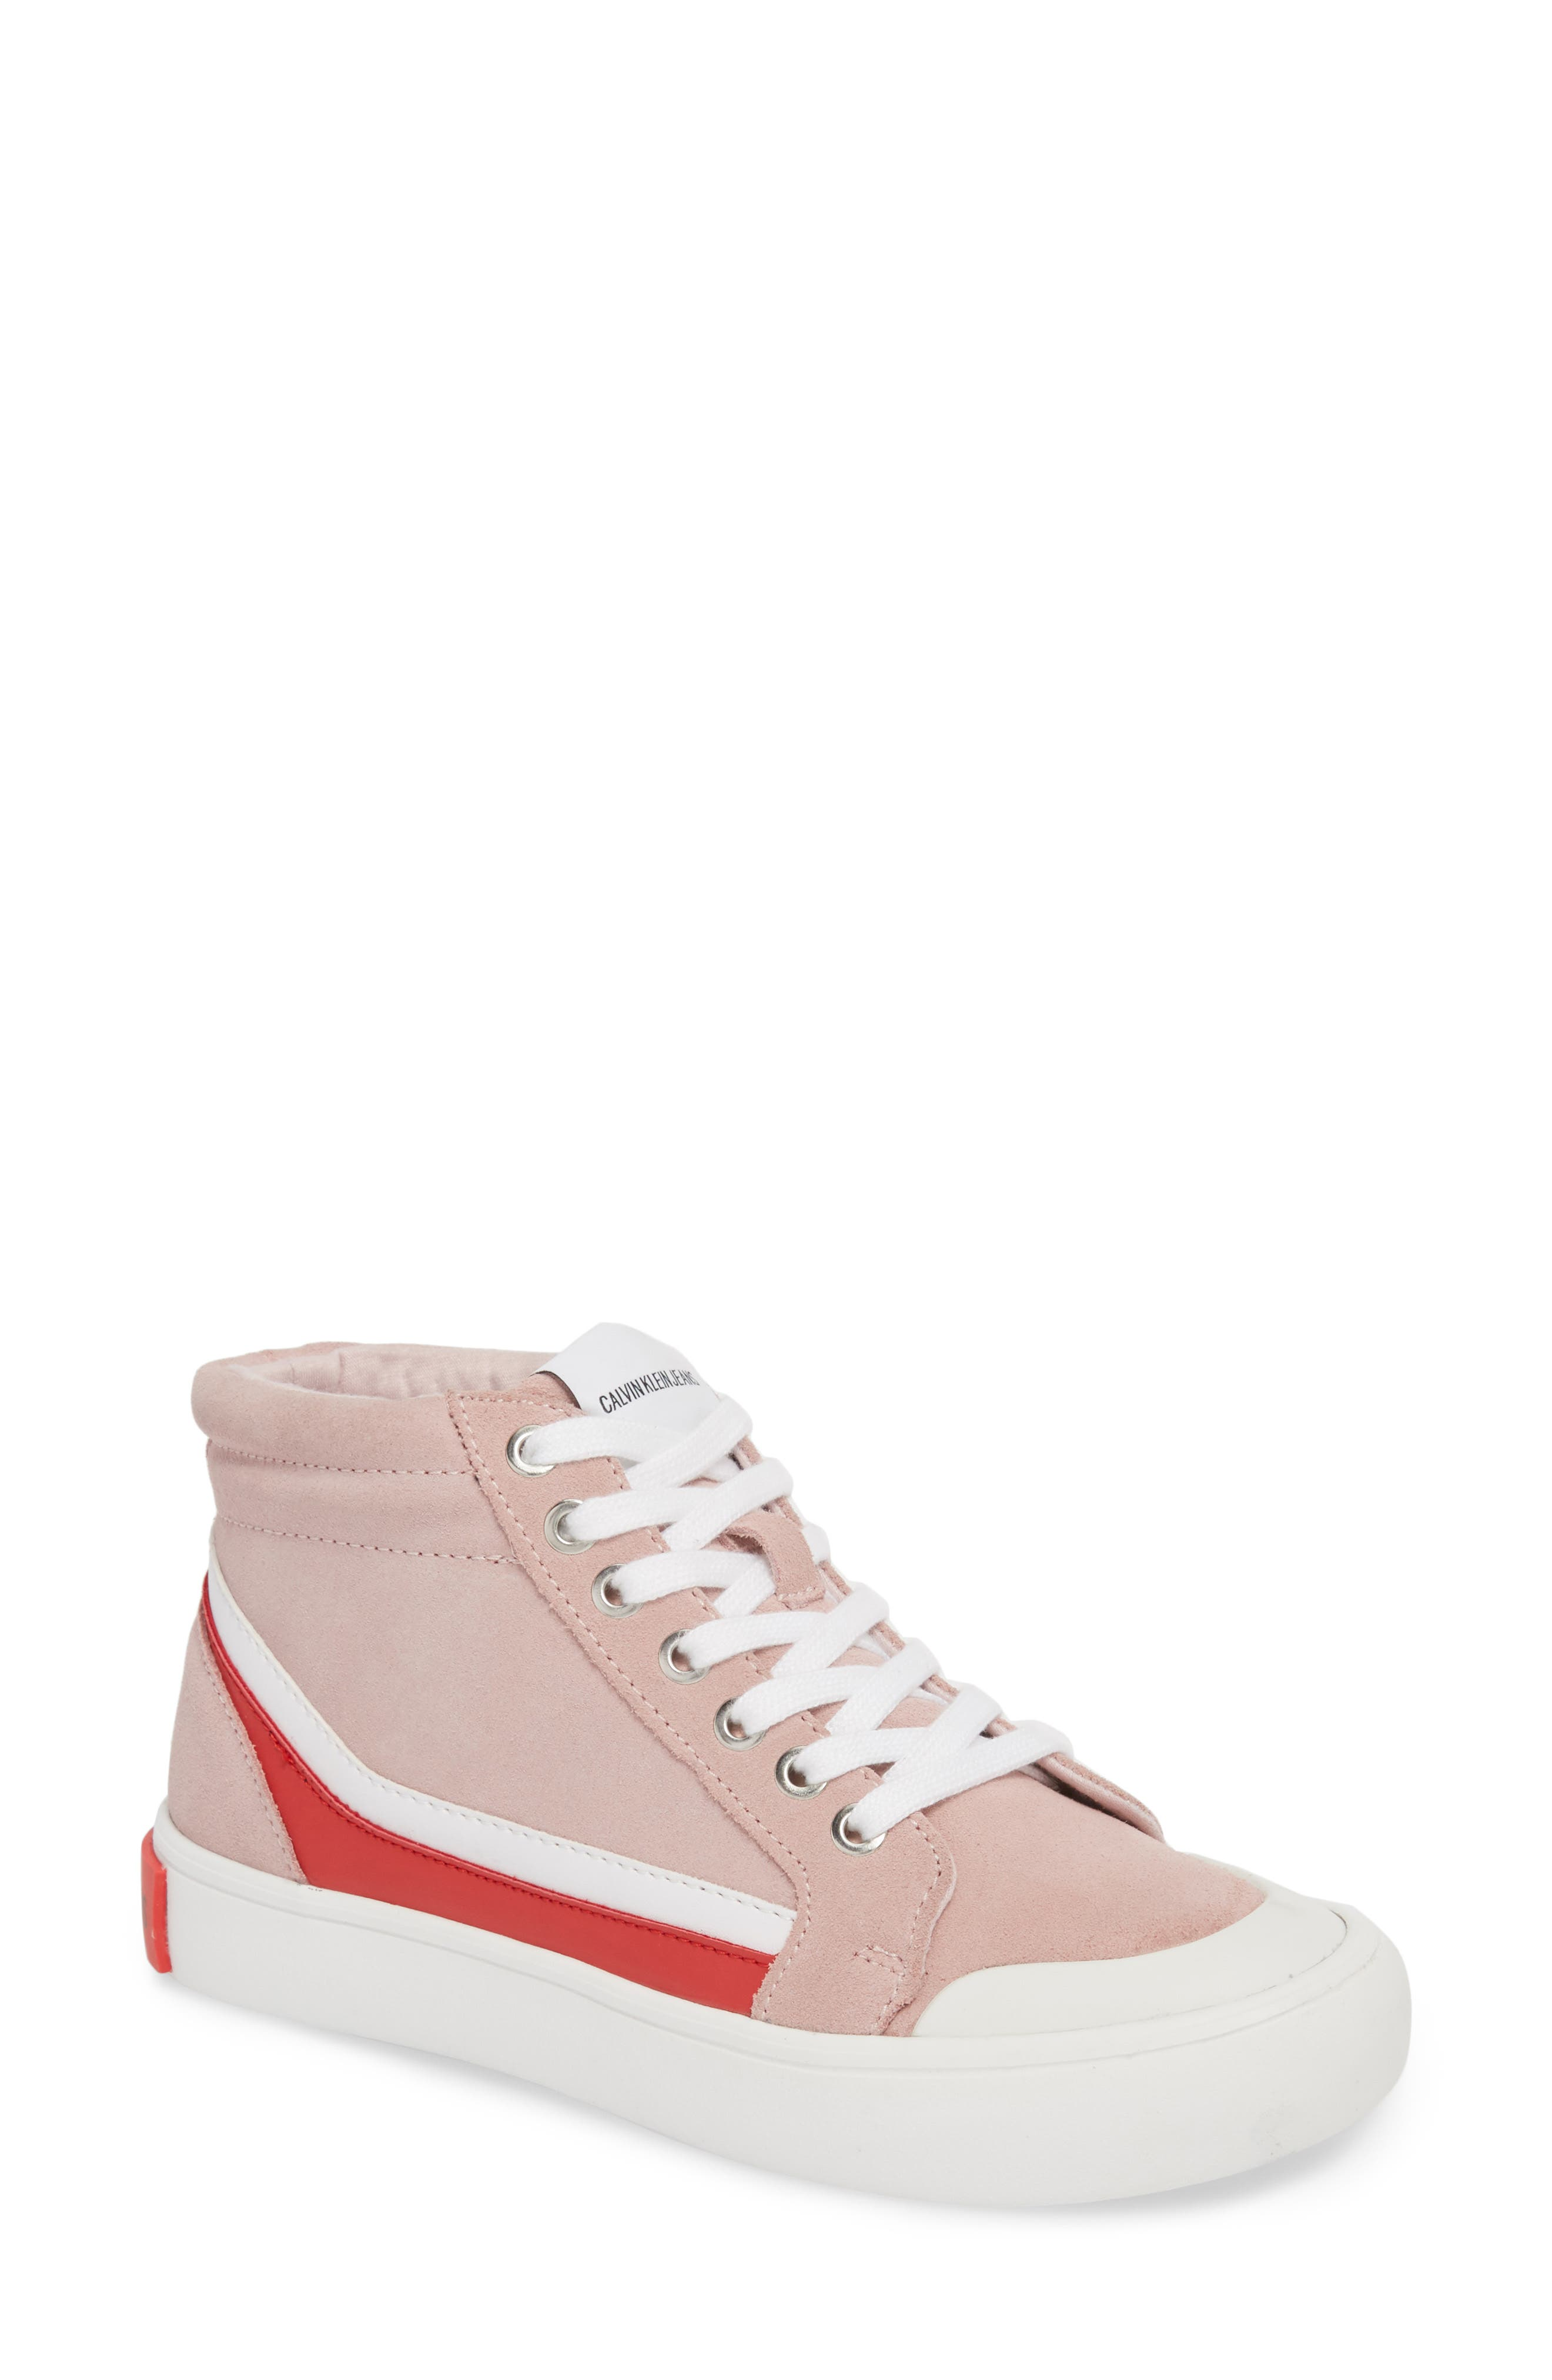 High Top Sneaker,                             Main thumbnail 1, color,                             Chintz Rose/ White/ Tomato